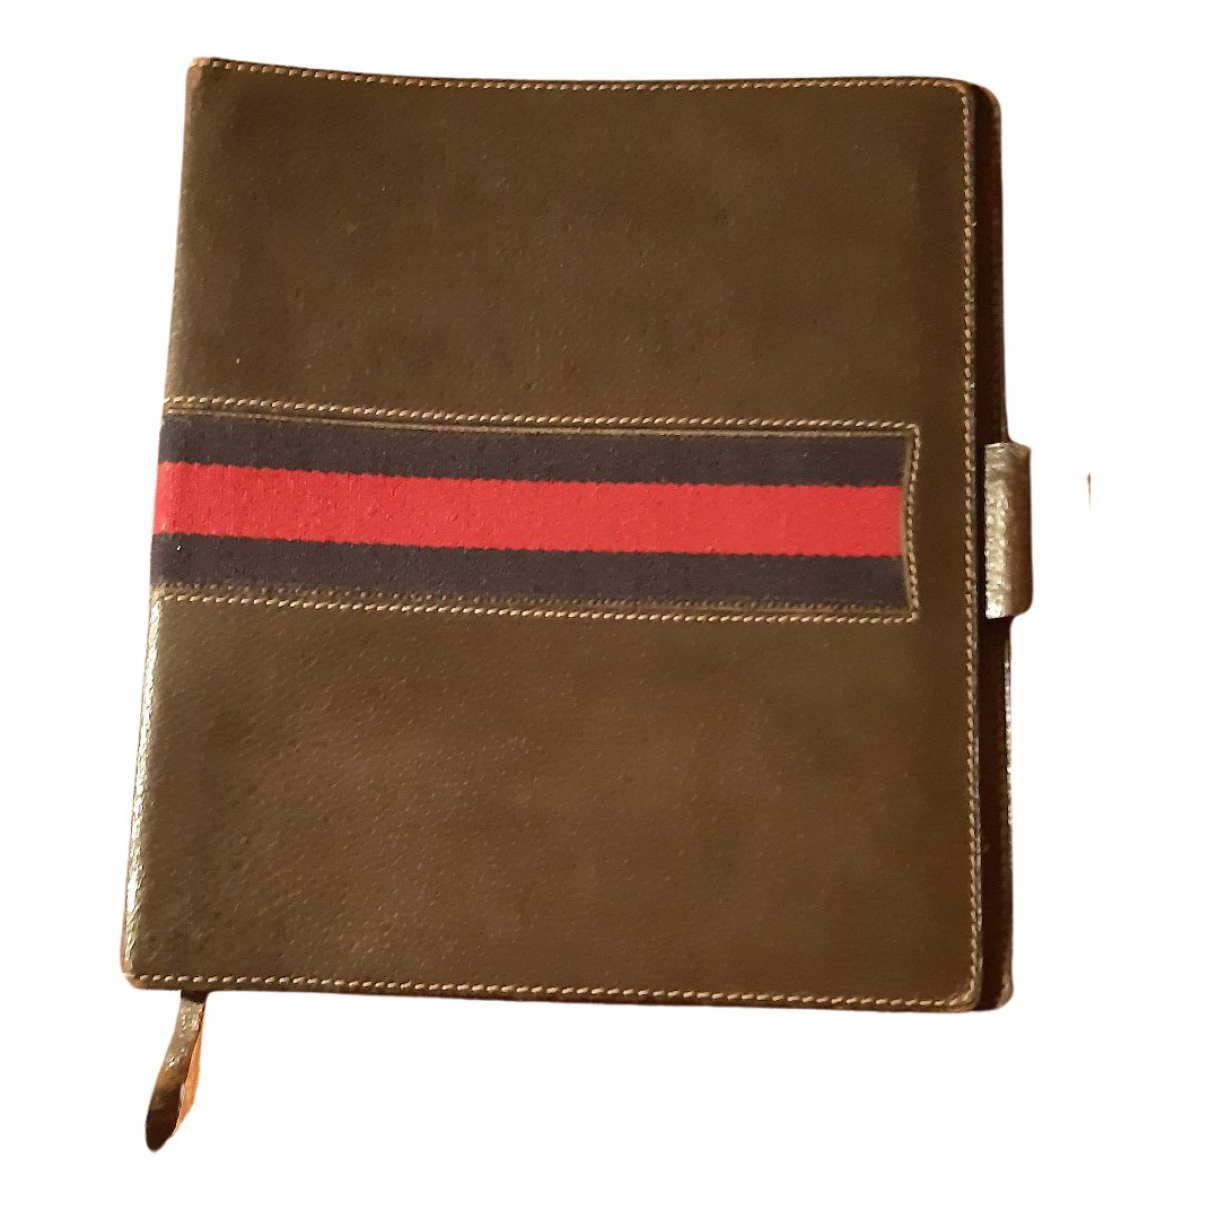 Gucci N Blue Leather Home decor for Life & Living N